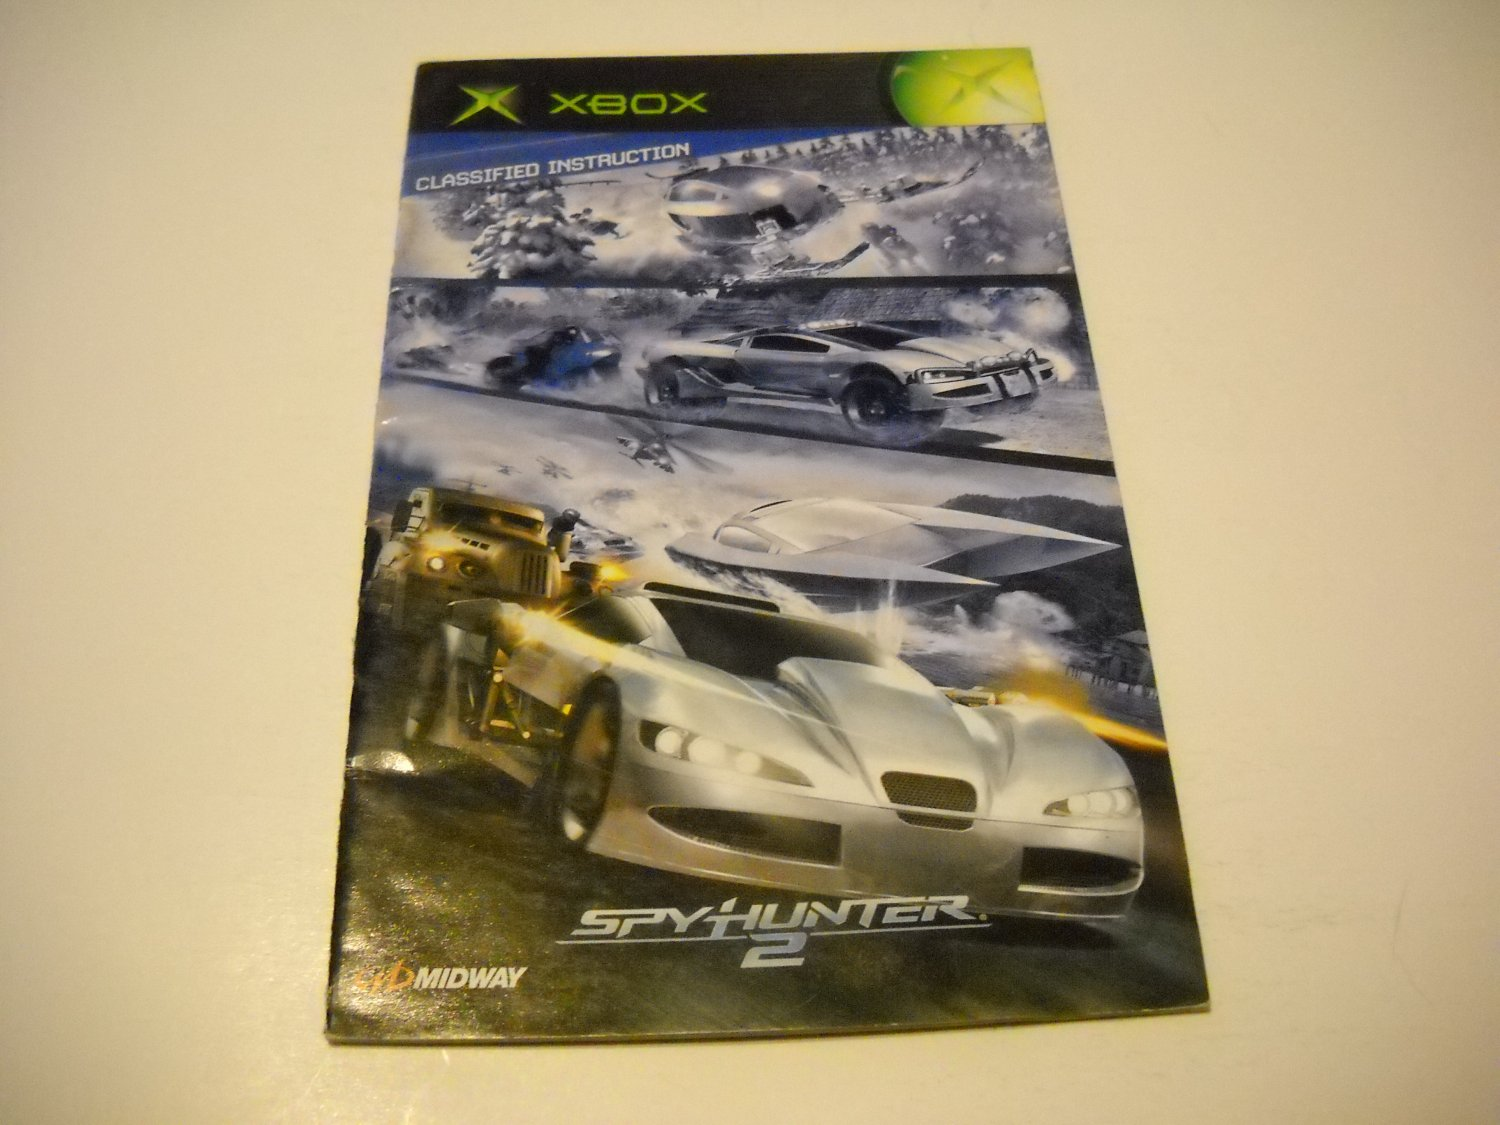 Manual ONLY ~  for Spyhunter 2 Classified Instructions   Xbox